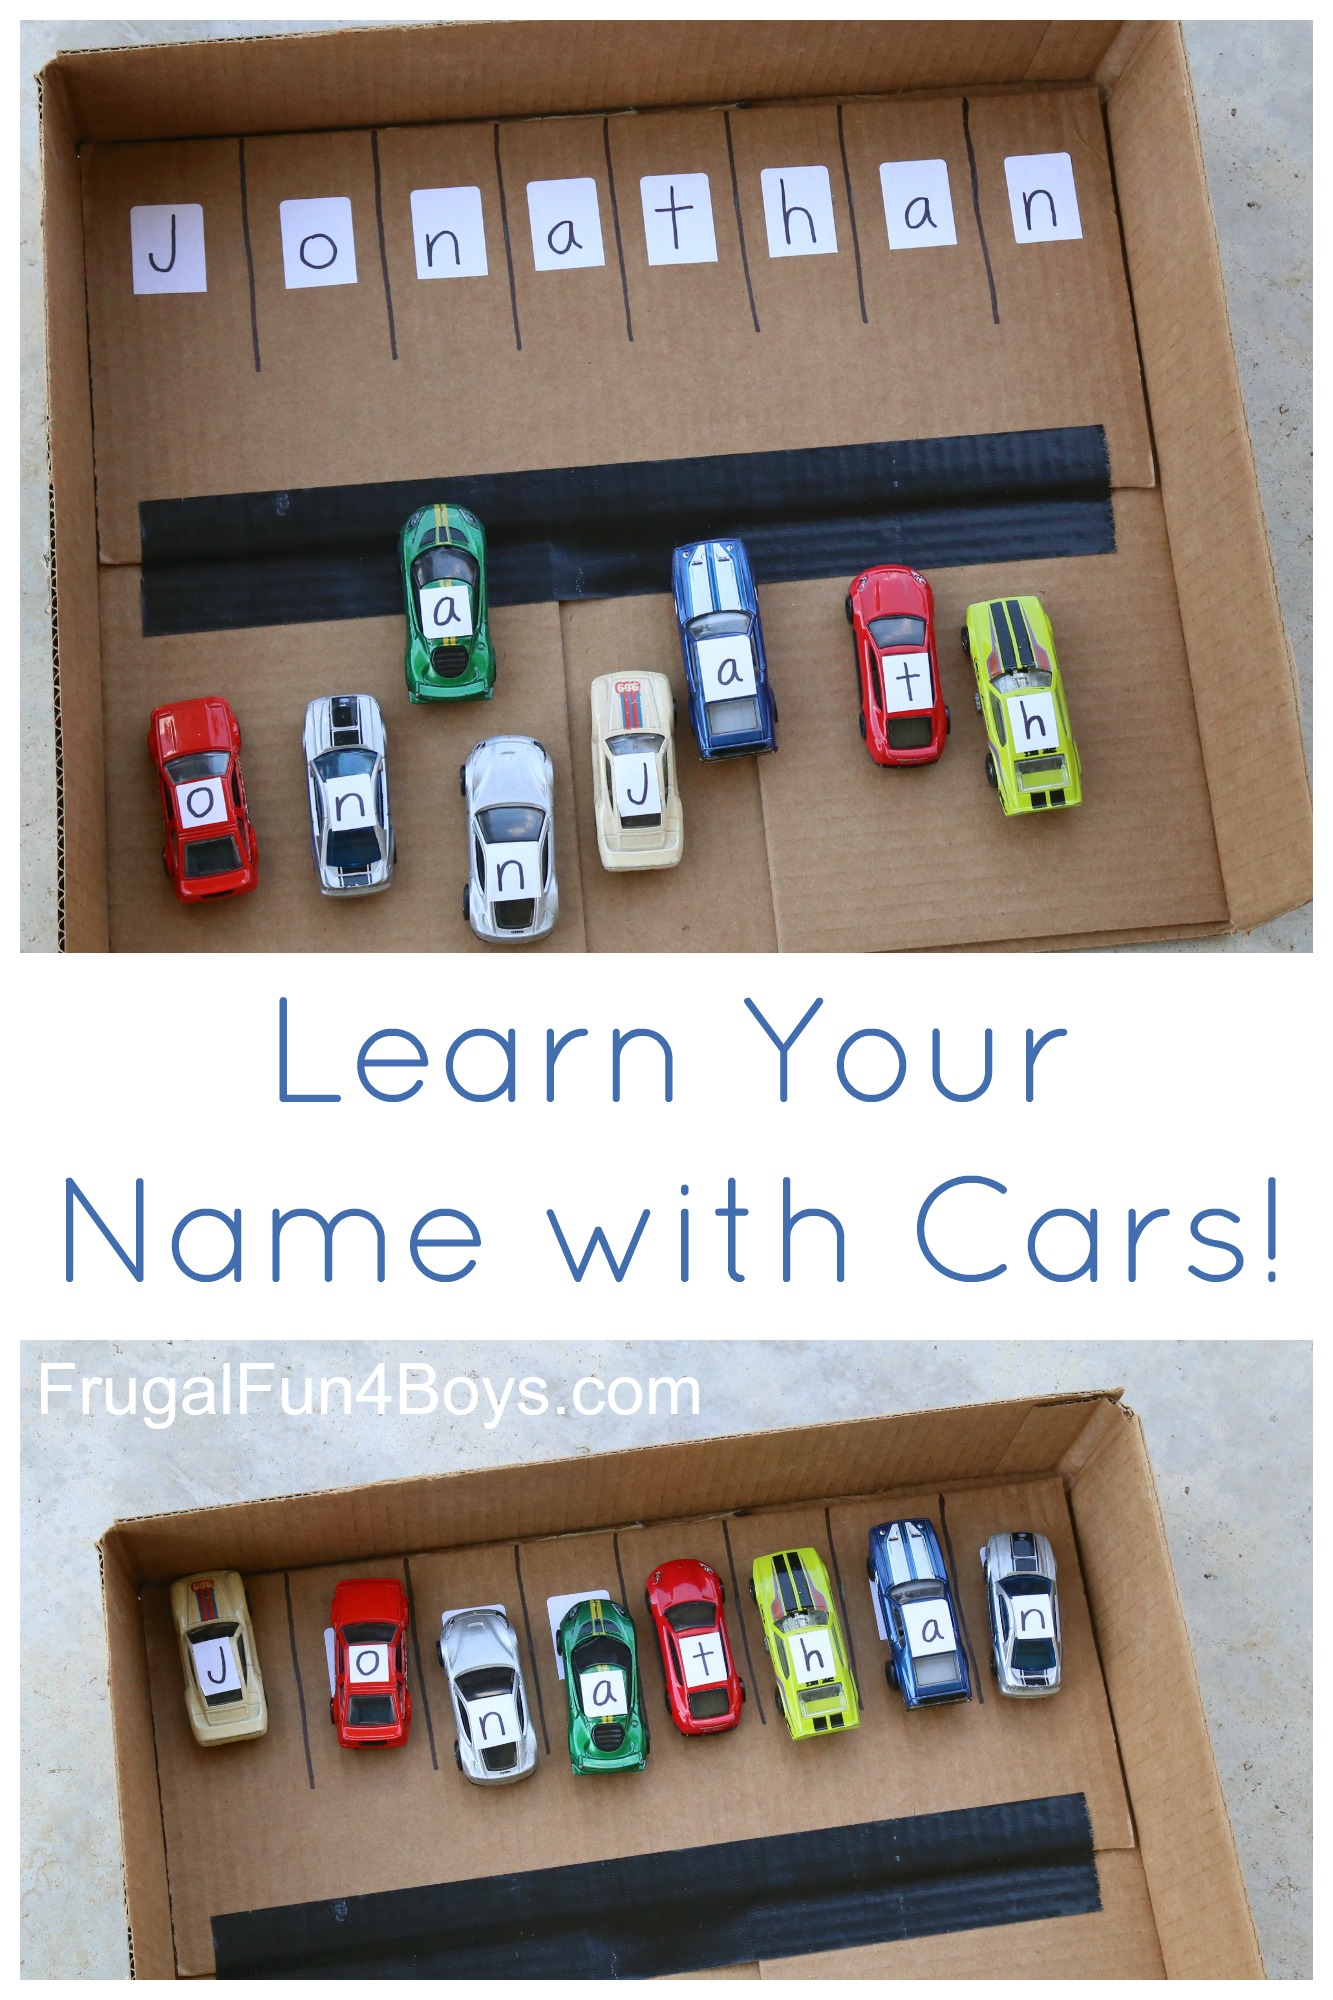 Learn Your Name with Cars!